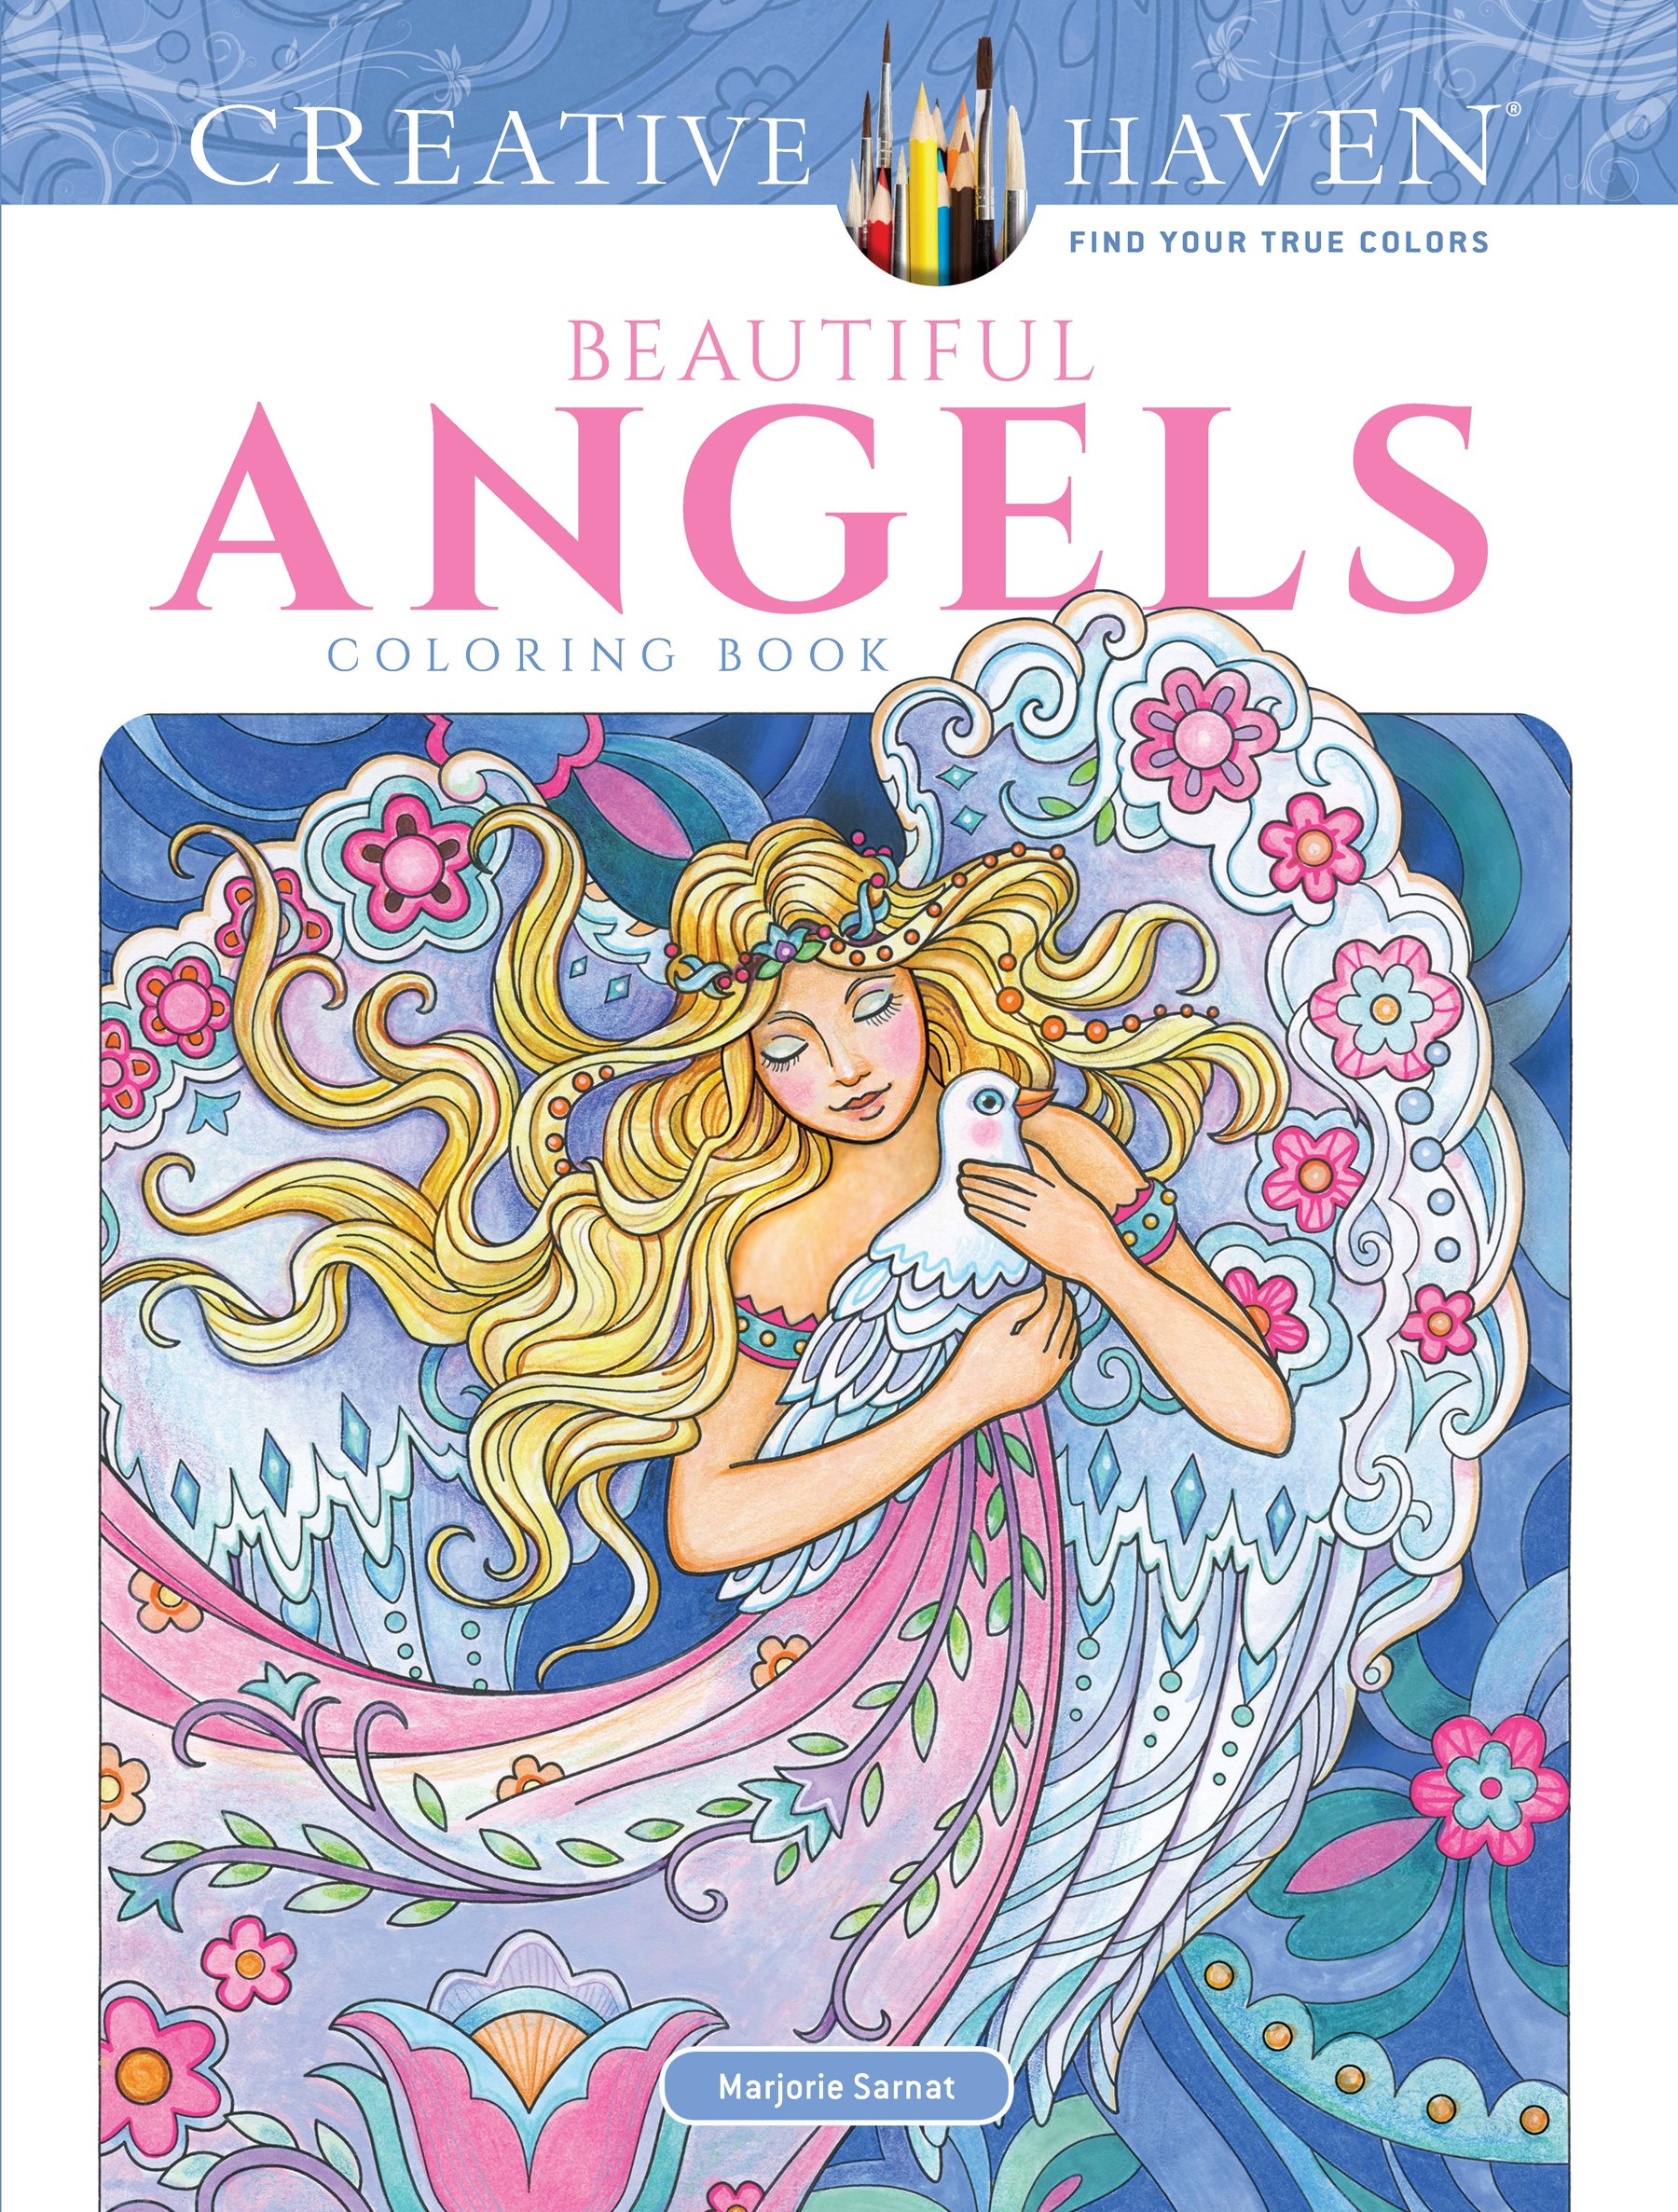 Creative Haven Beautiful Angels Coloring Book Adult Coloring: Amazon ...